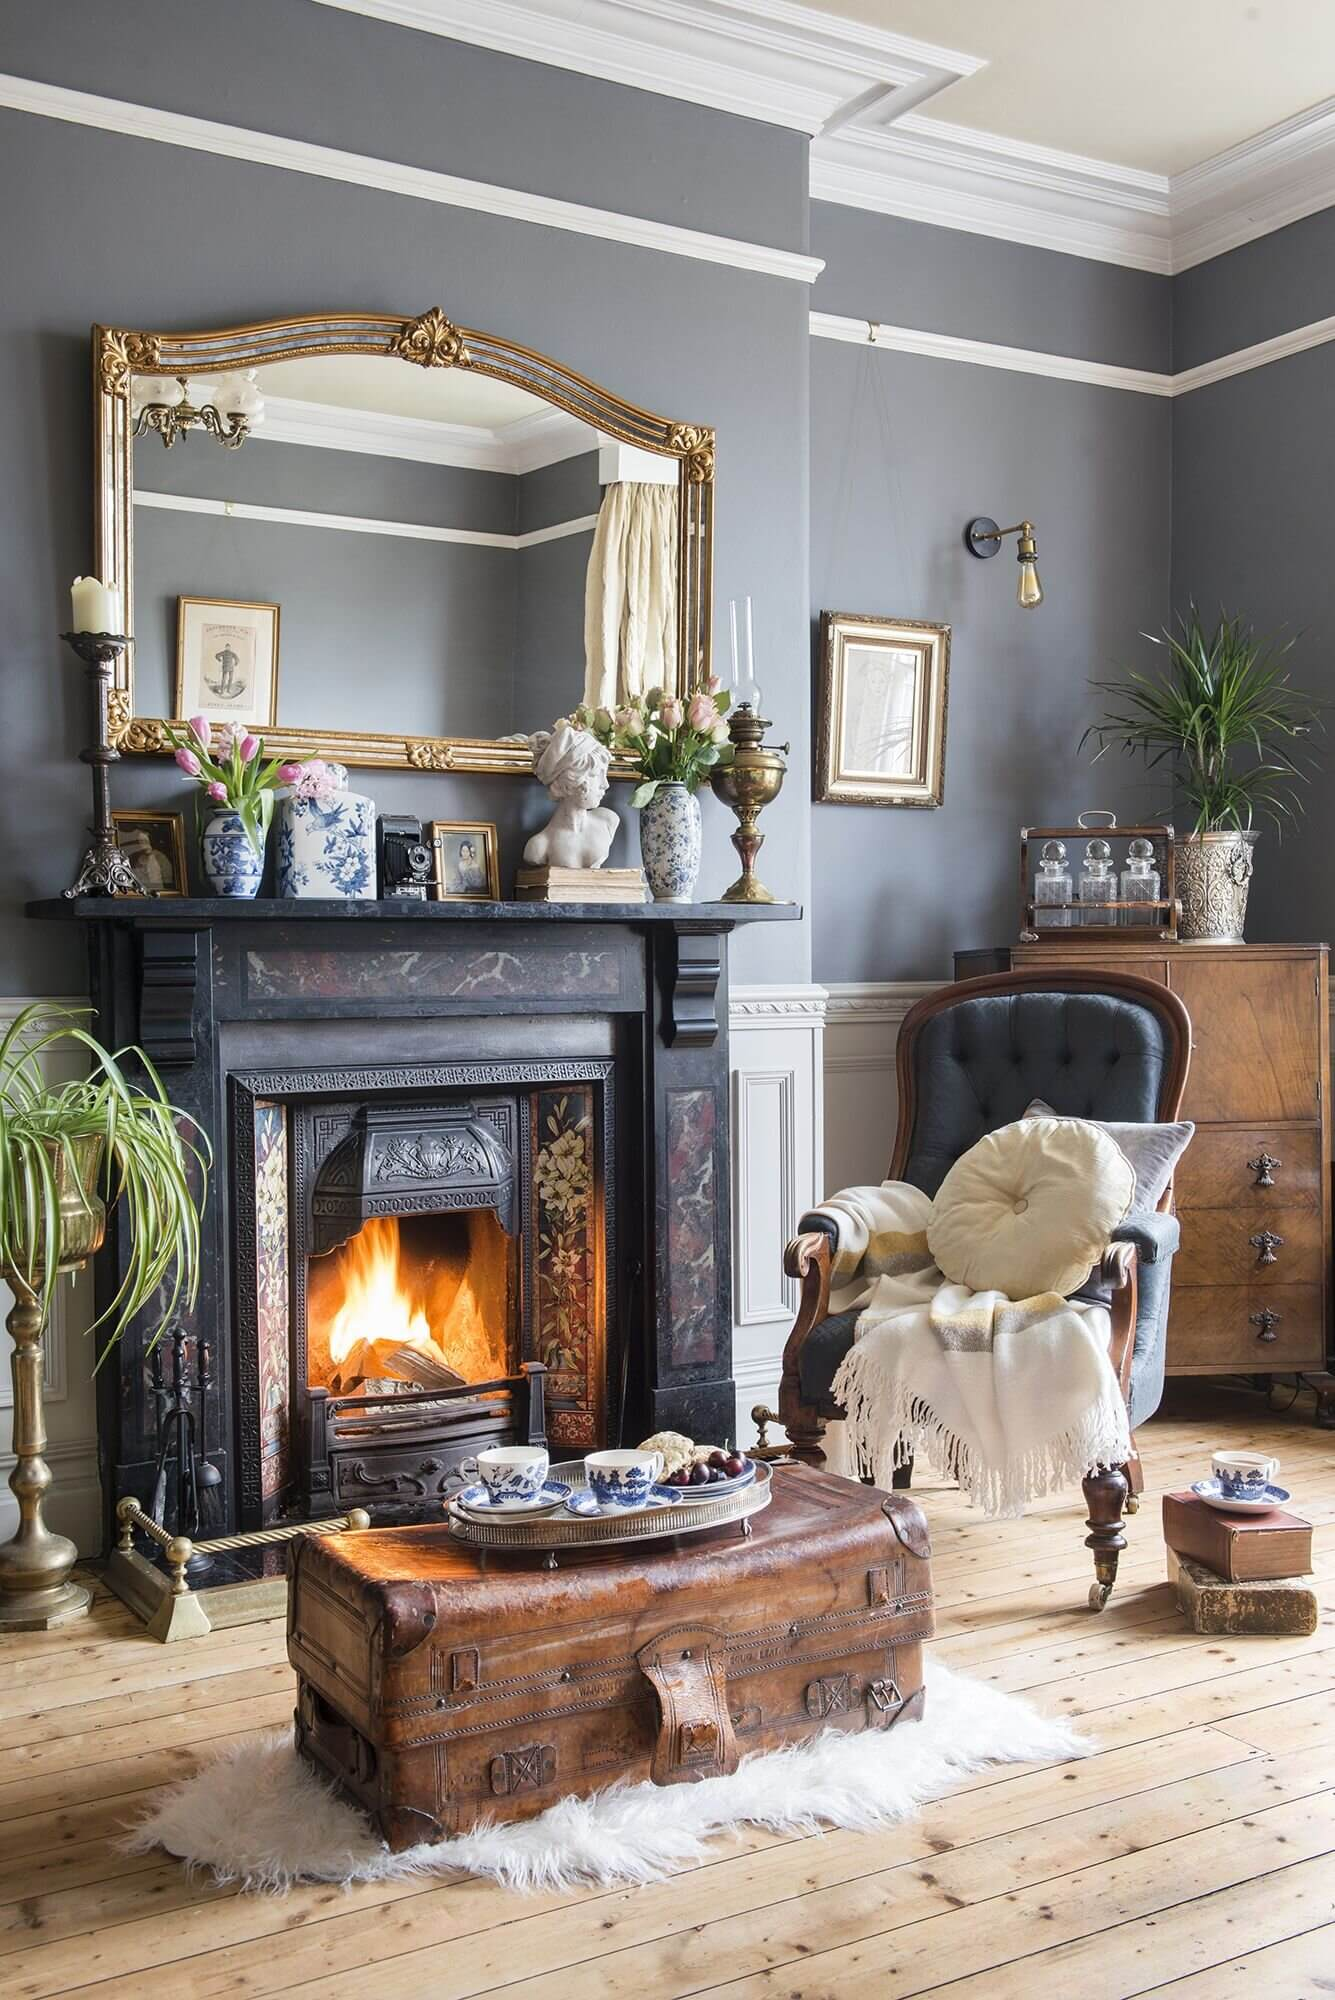 Period Charm in a Renovated Victorian Townhouse in England